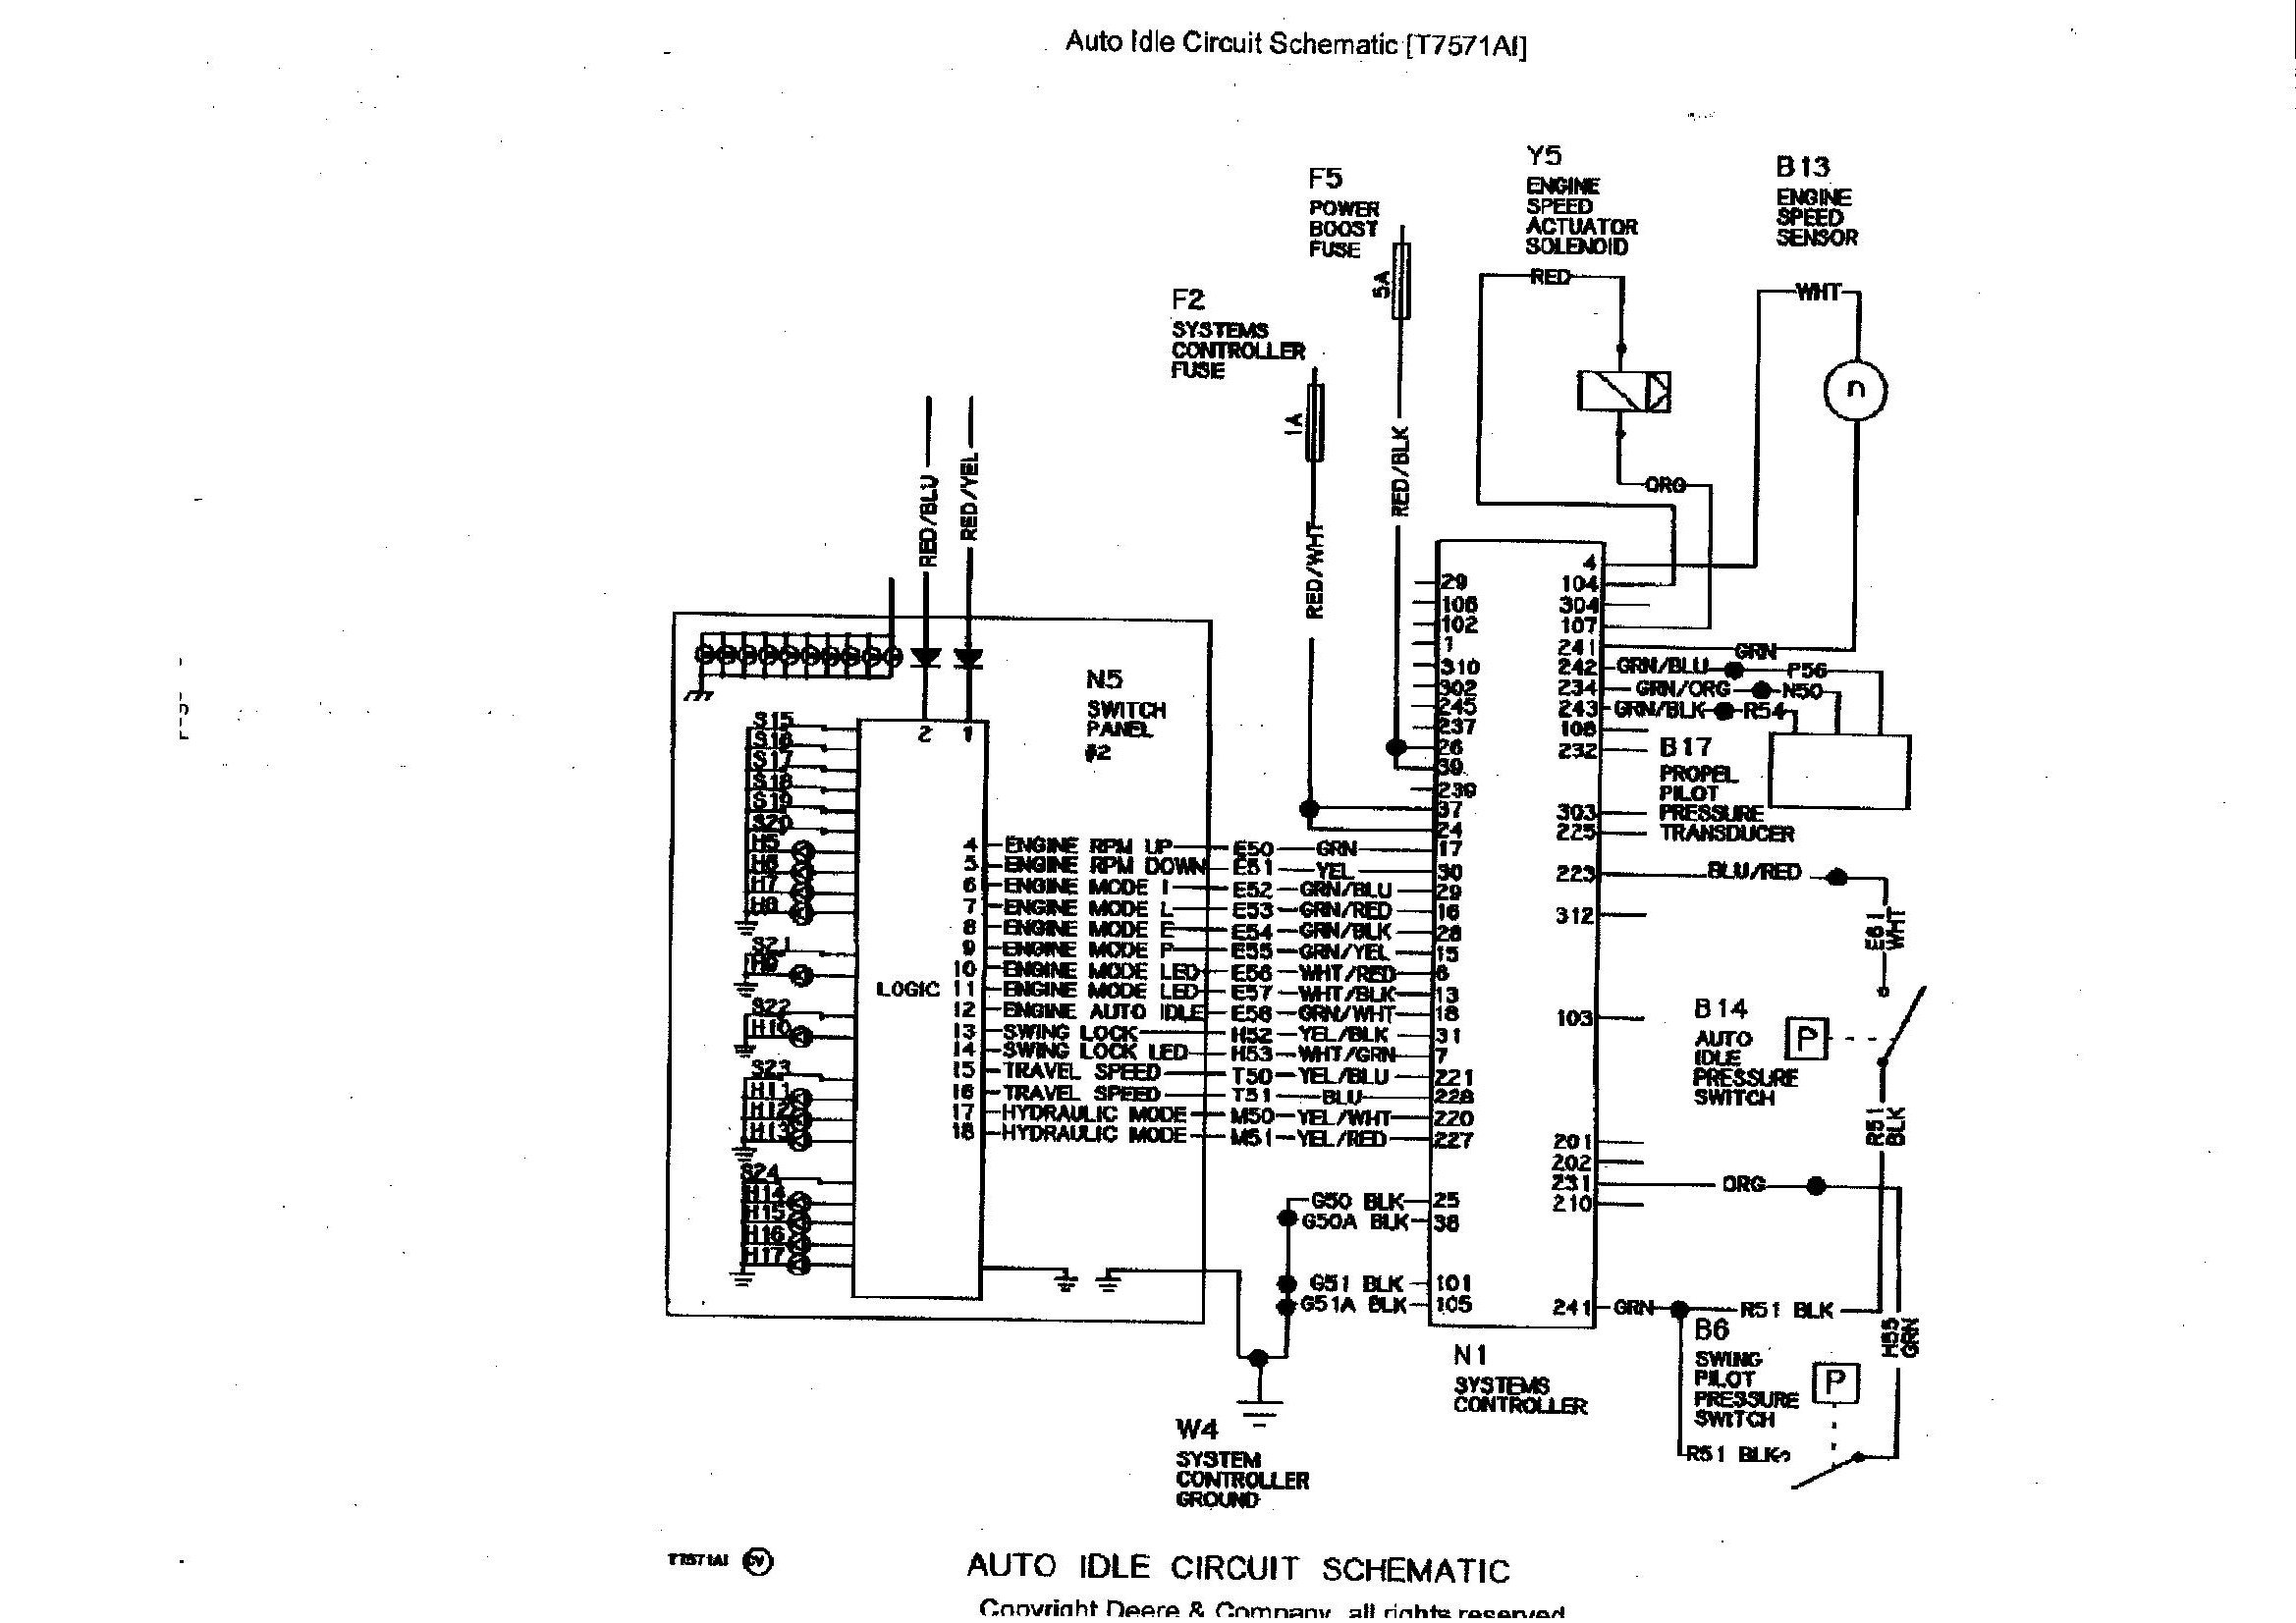 John Deere Excavator Wiring Diagram Daily Update 2940 Free Picture For 690 110 Backhoe